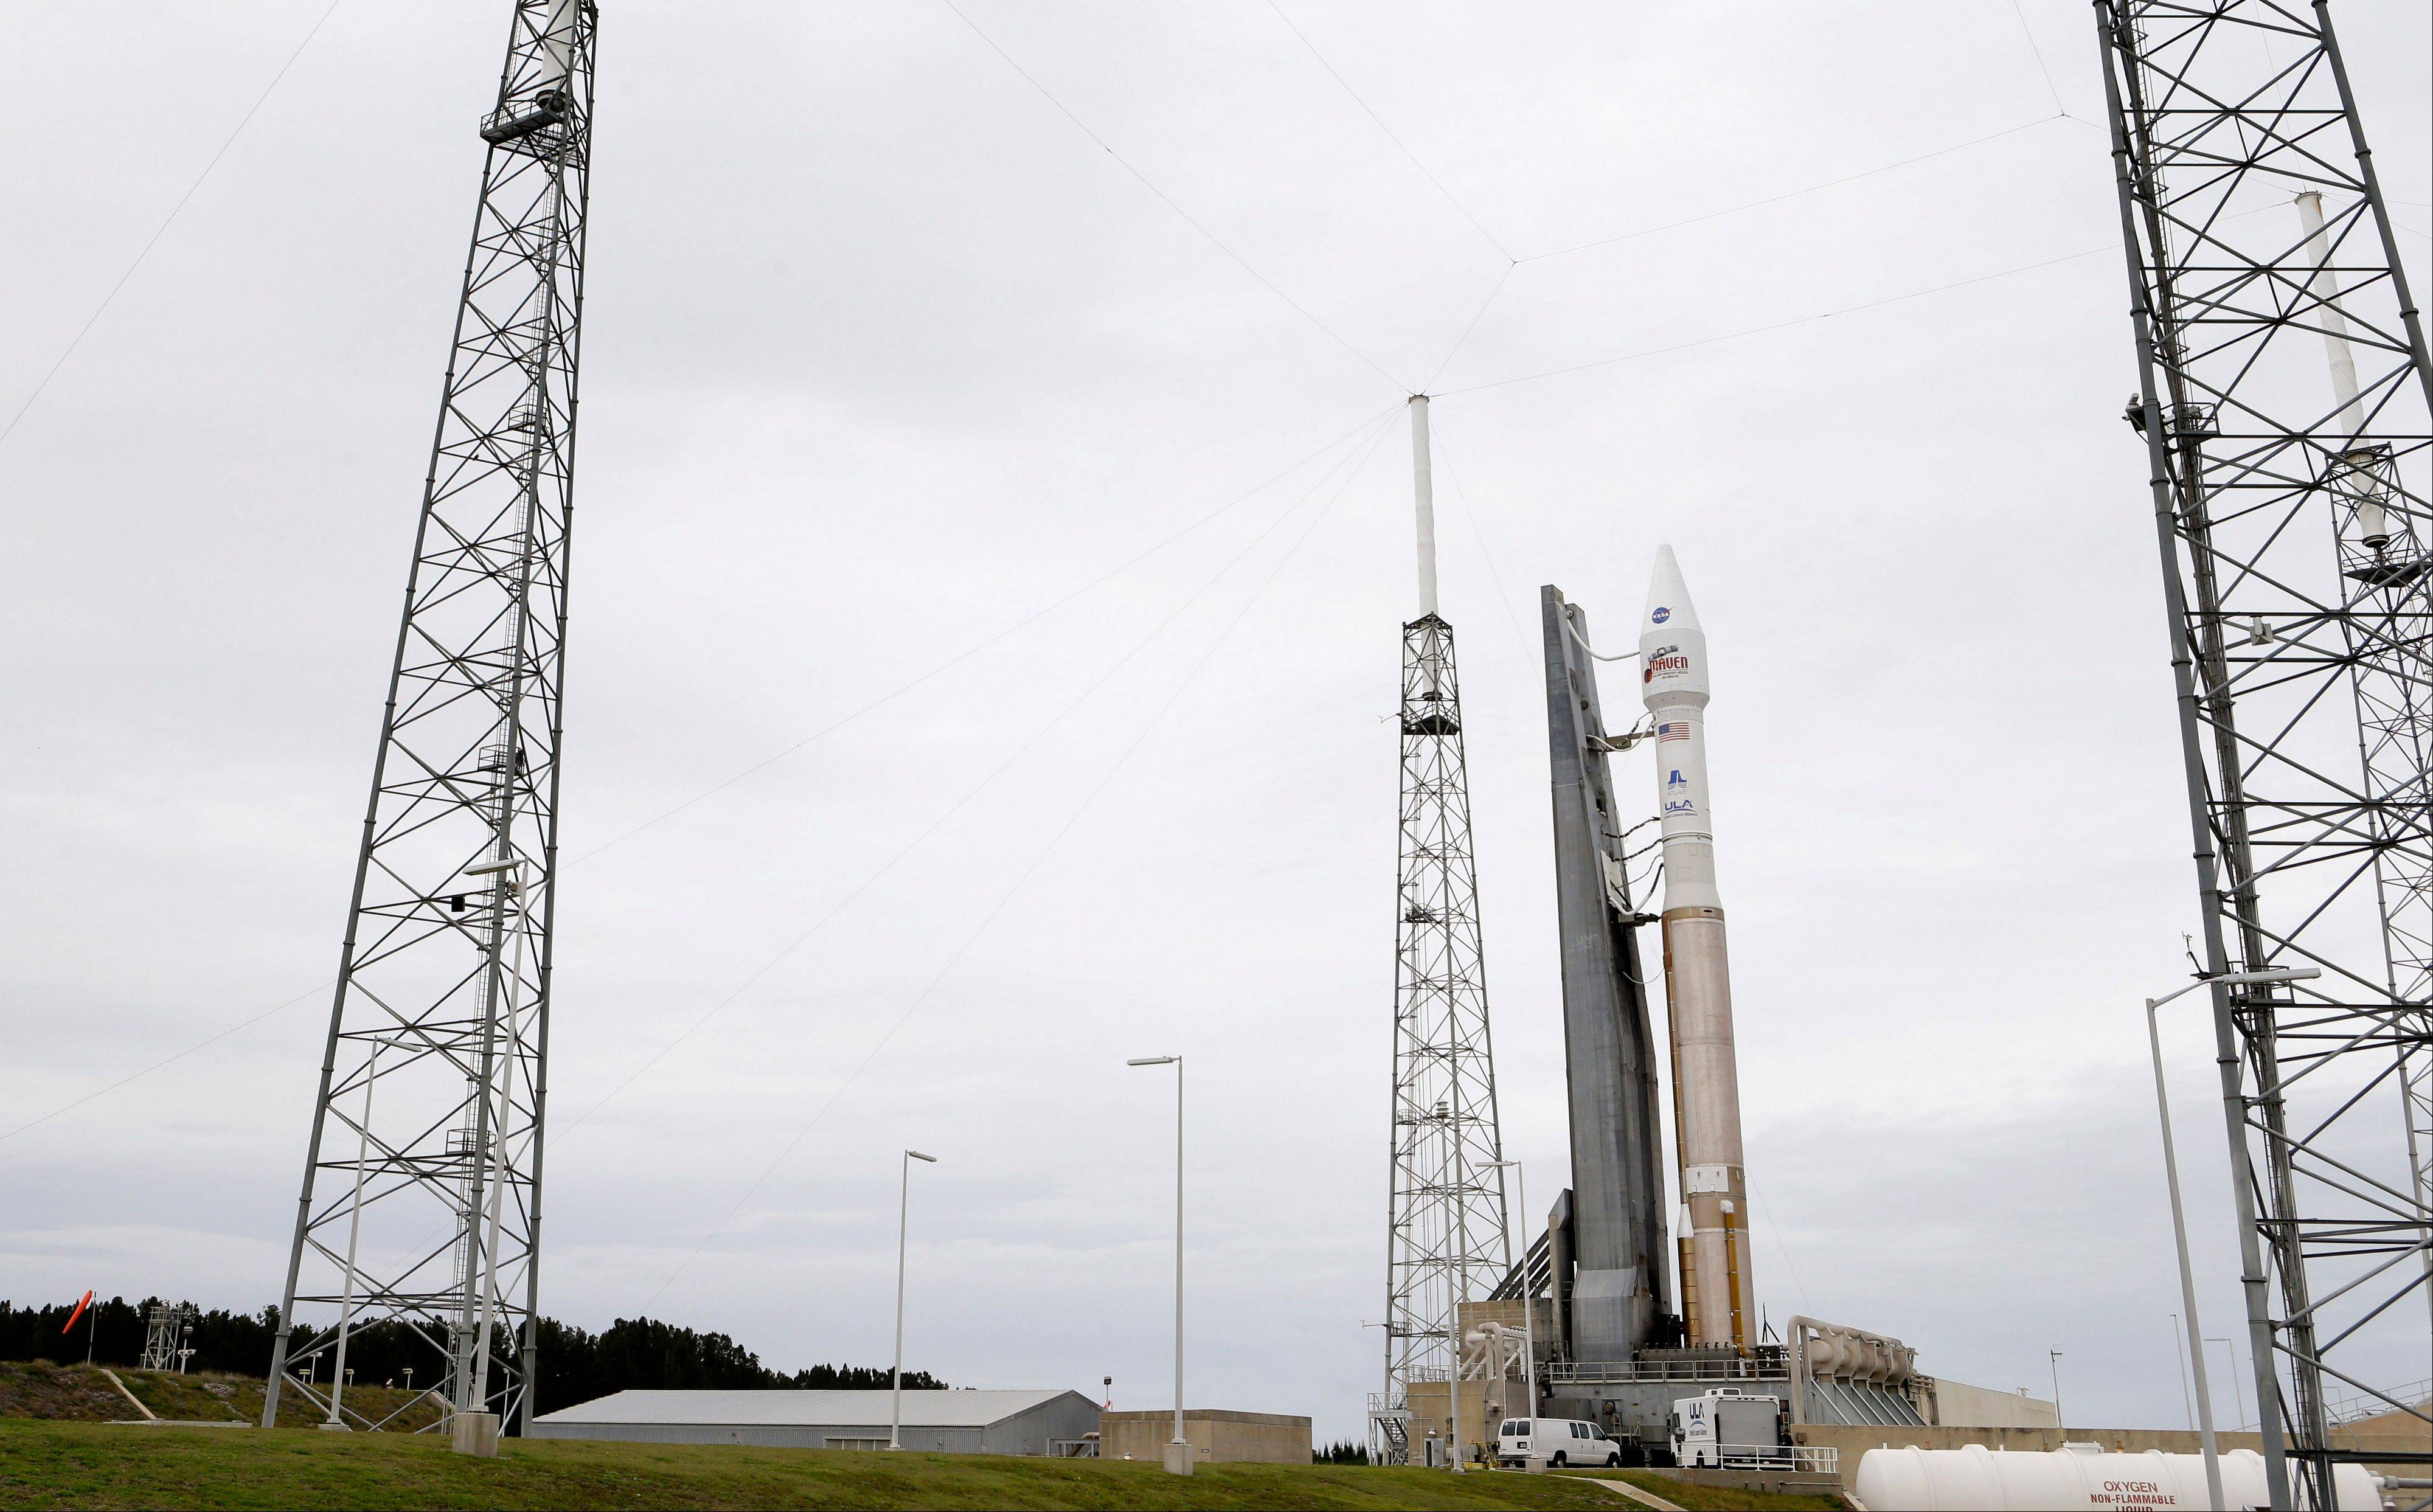 NASA�s Mars Atmosphere and Volatile Evolution probe, MAVEN, is set to launch atop a United Launch Alliance Atlas 5 rocket from Cape Canaveral Air Force Station on Monday.